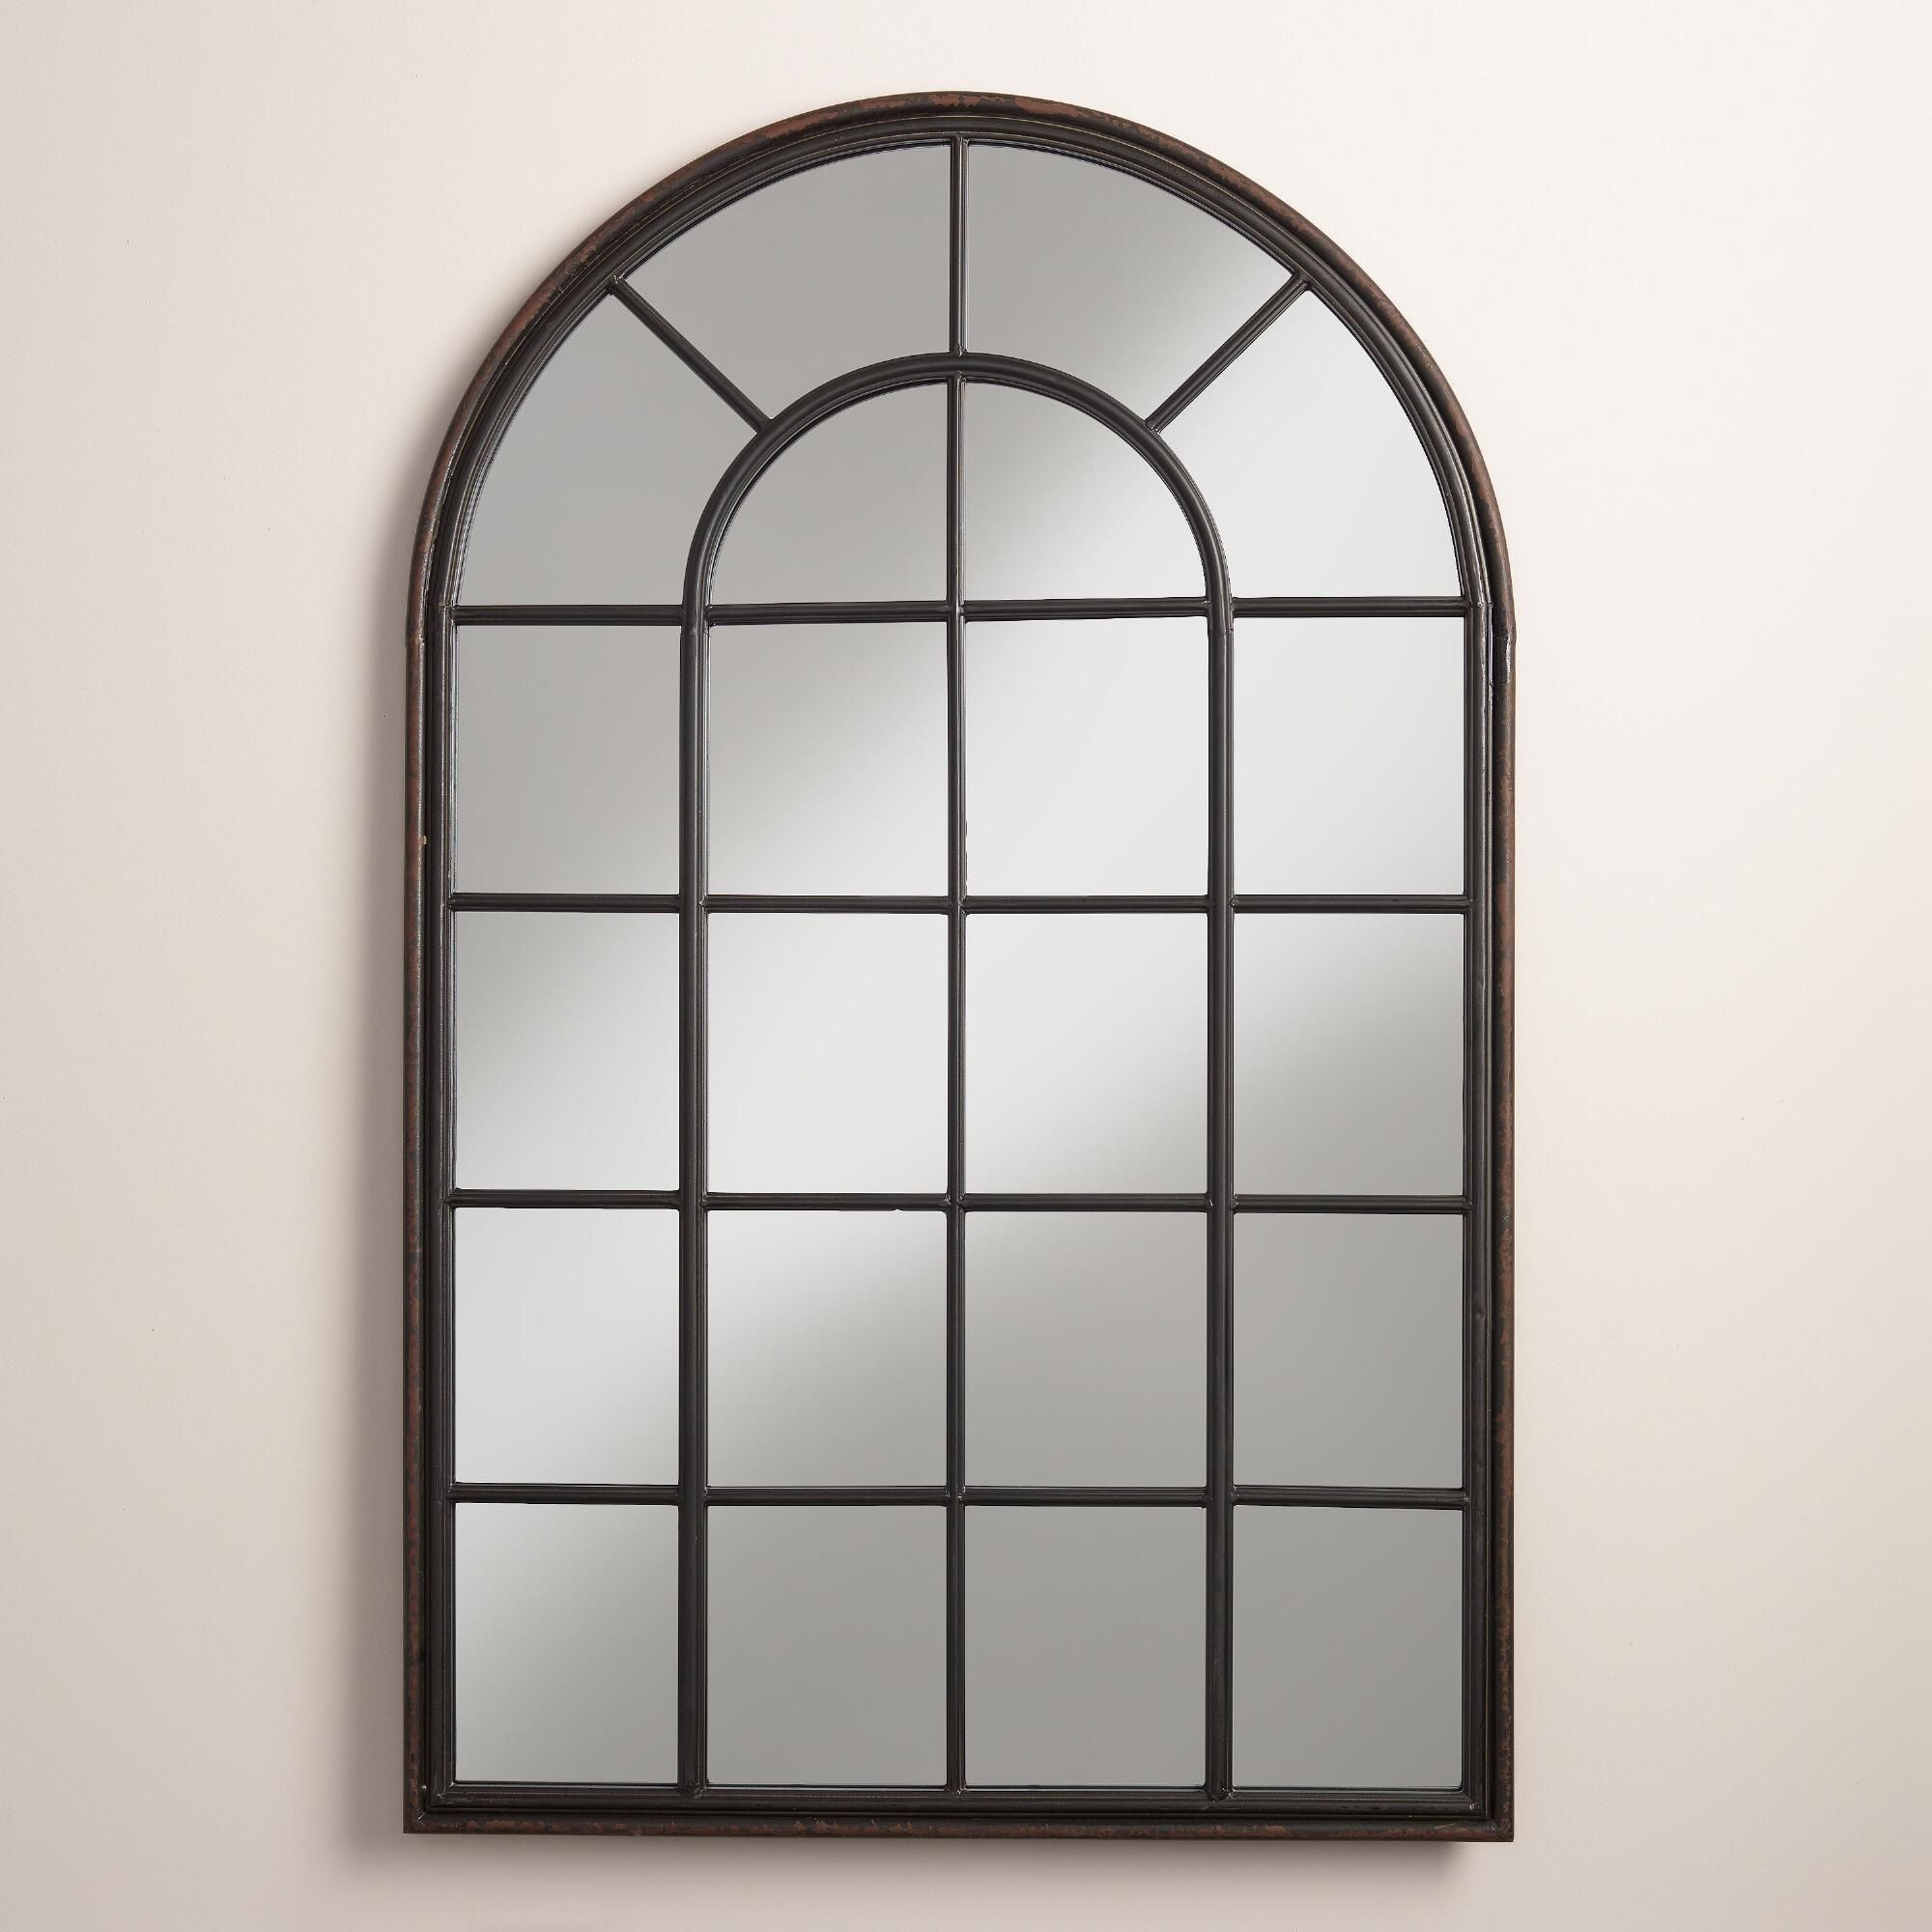 Arch Wall Mirror our window-inspired iron mirror features a broad arch and an aged